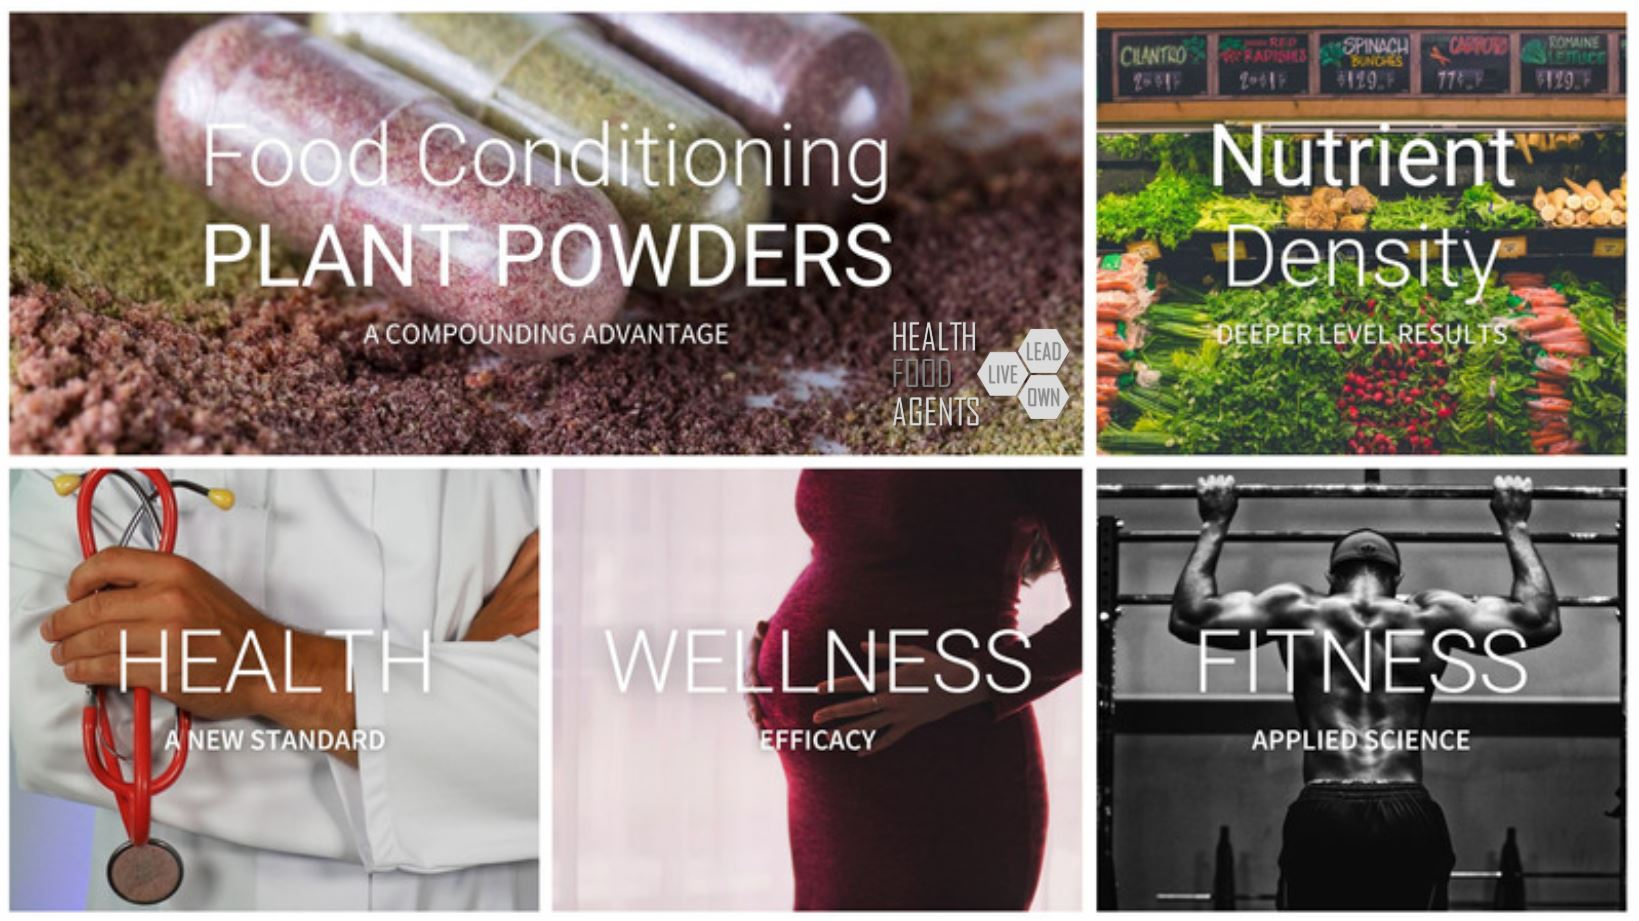 Plant powders daily conditions anyone